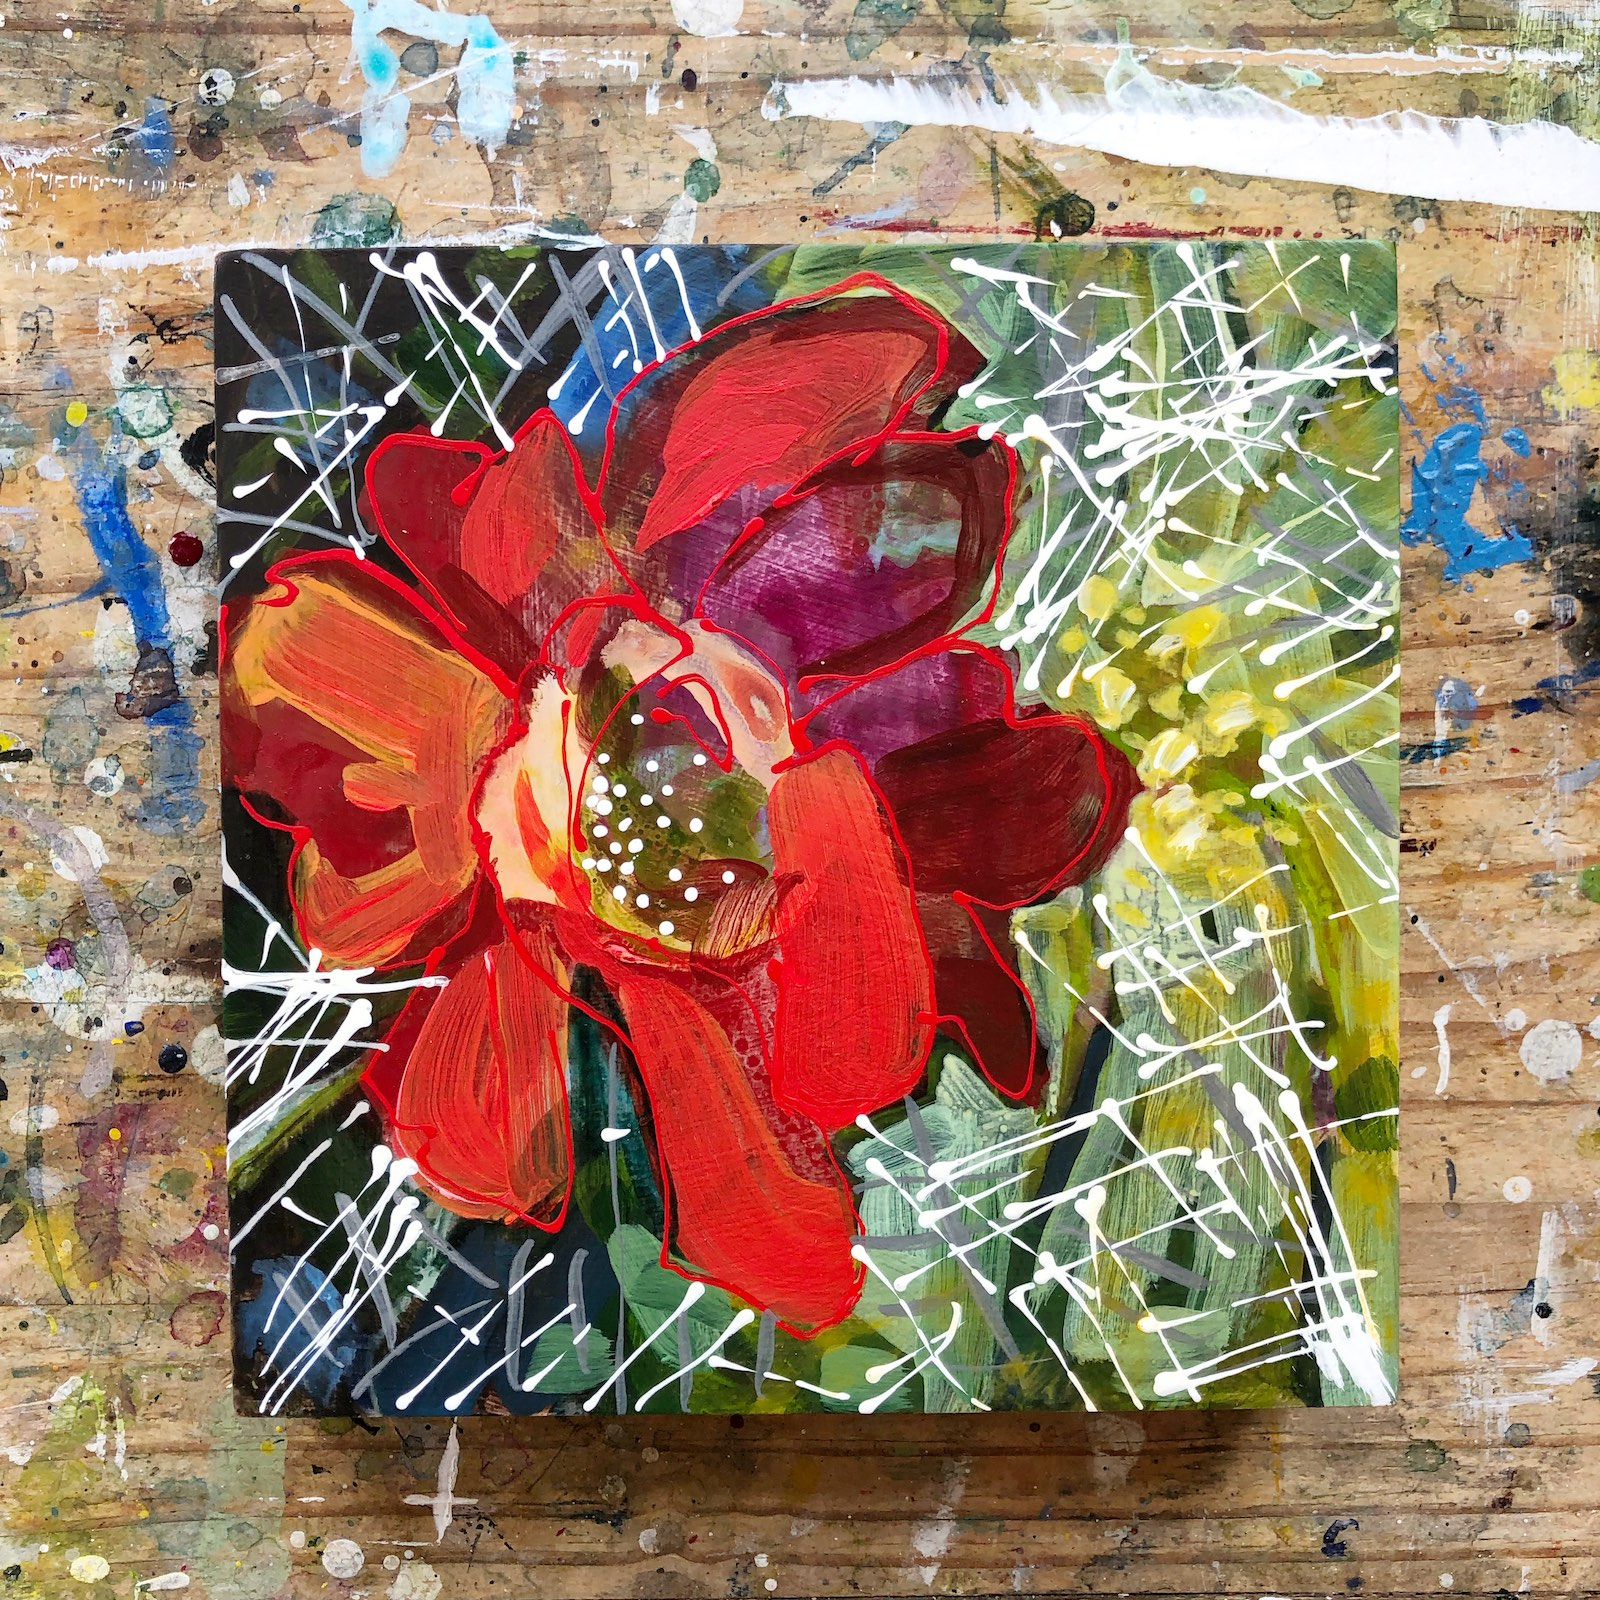 Cactus Flower No1 painting by Lance Whitner created in her cool little studio in Steamboat Springs located in the Colorado Rocky Mountains